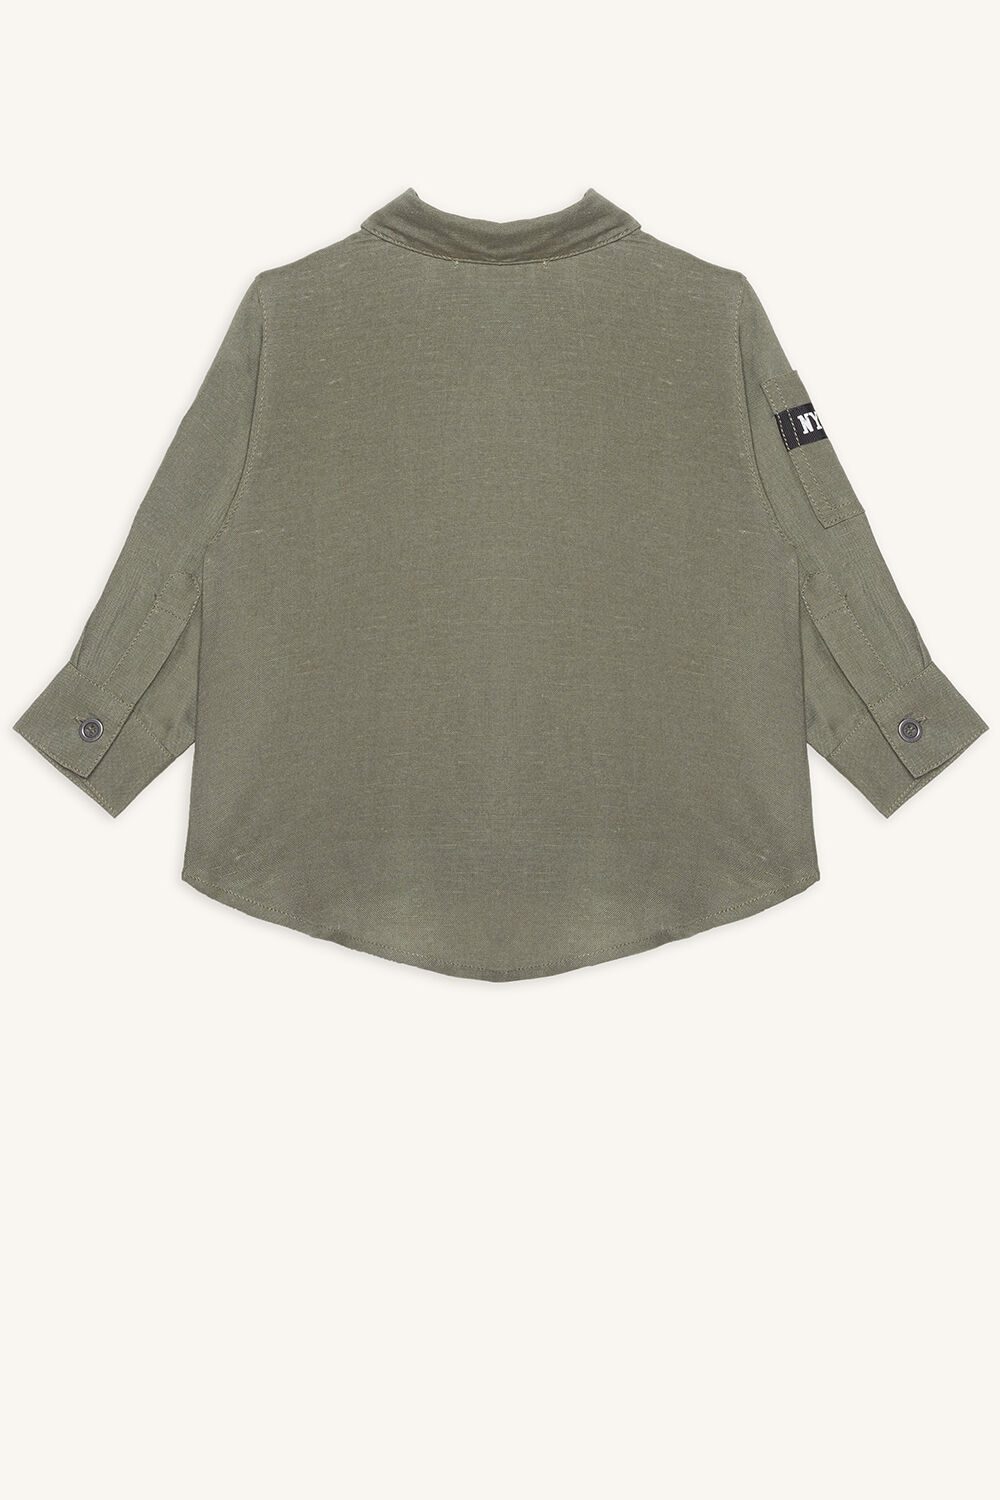 ARMY SHIRT in colour DEEP LICHEN GREEN